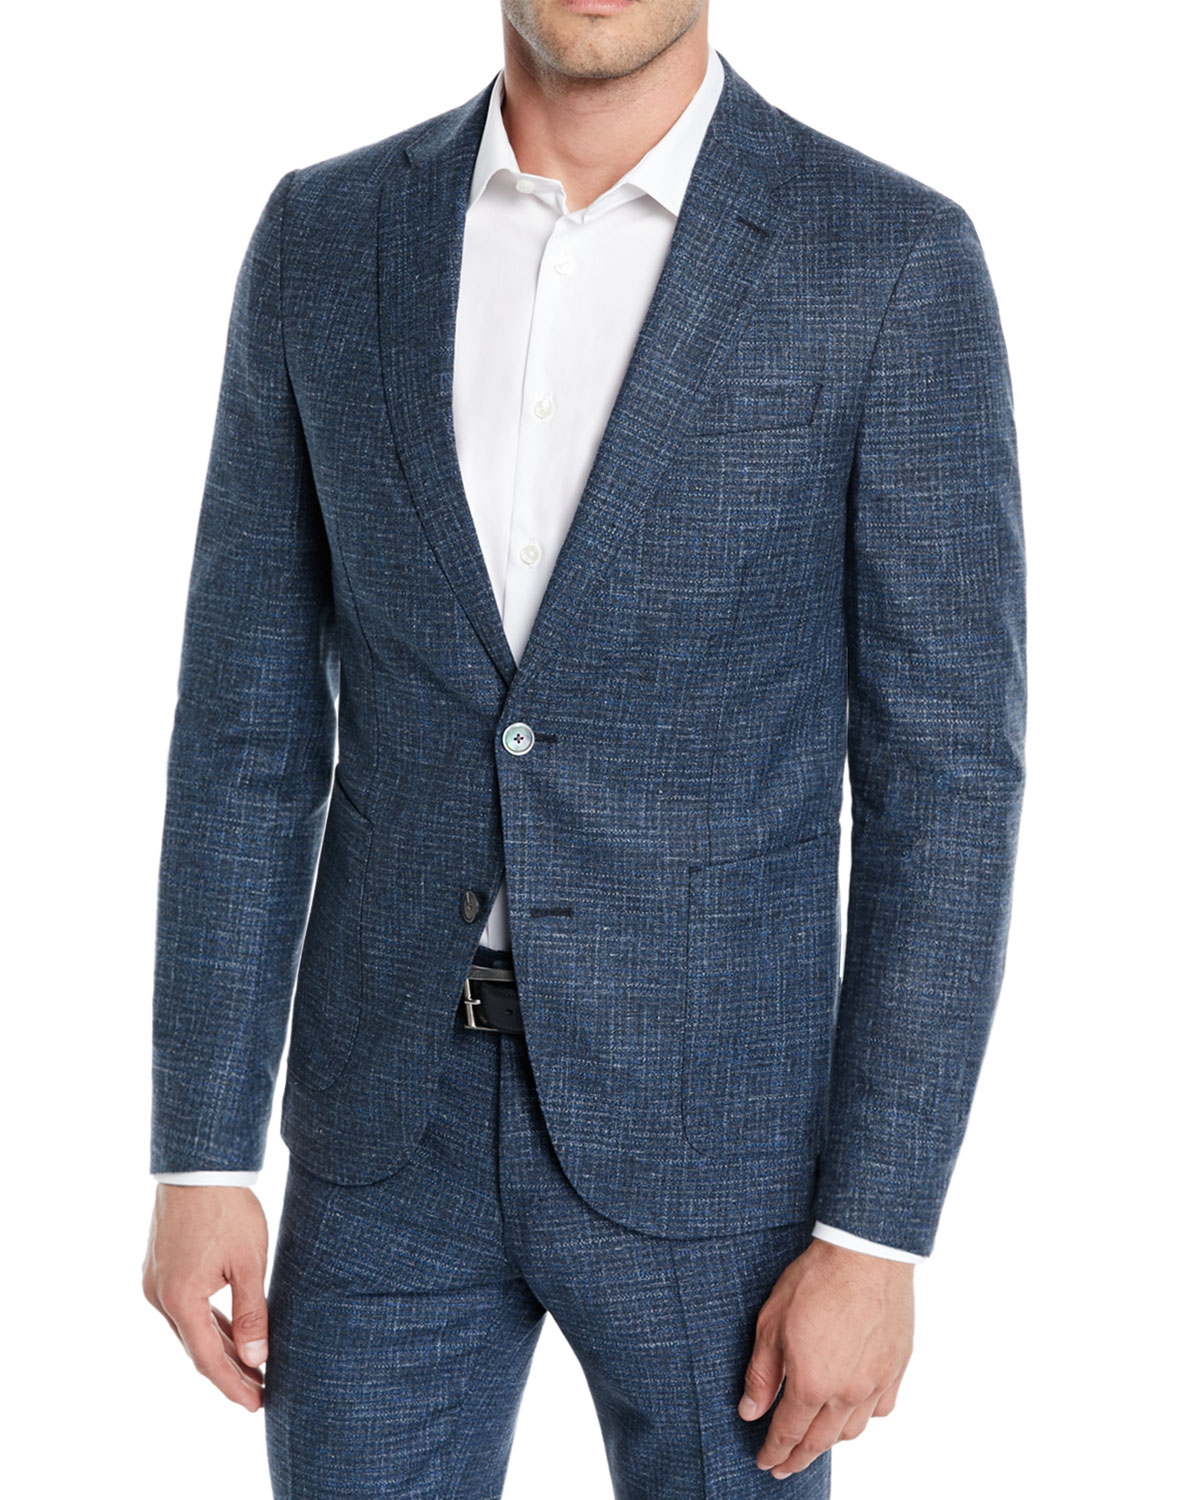 Men's Micro-Weave Wool/Cotton Two-Piece Suit